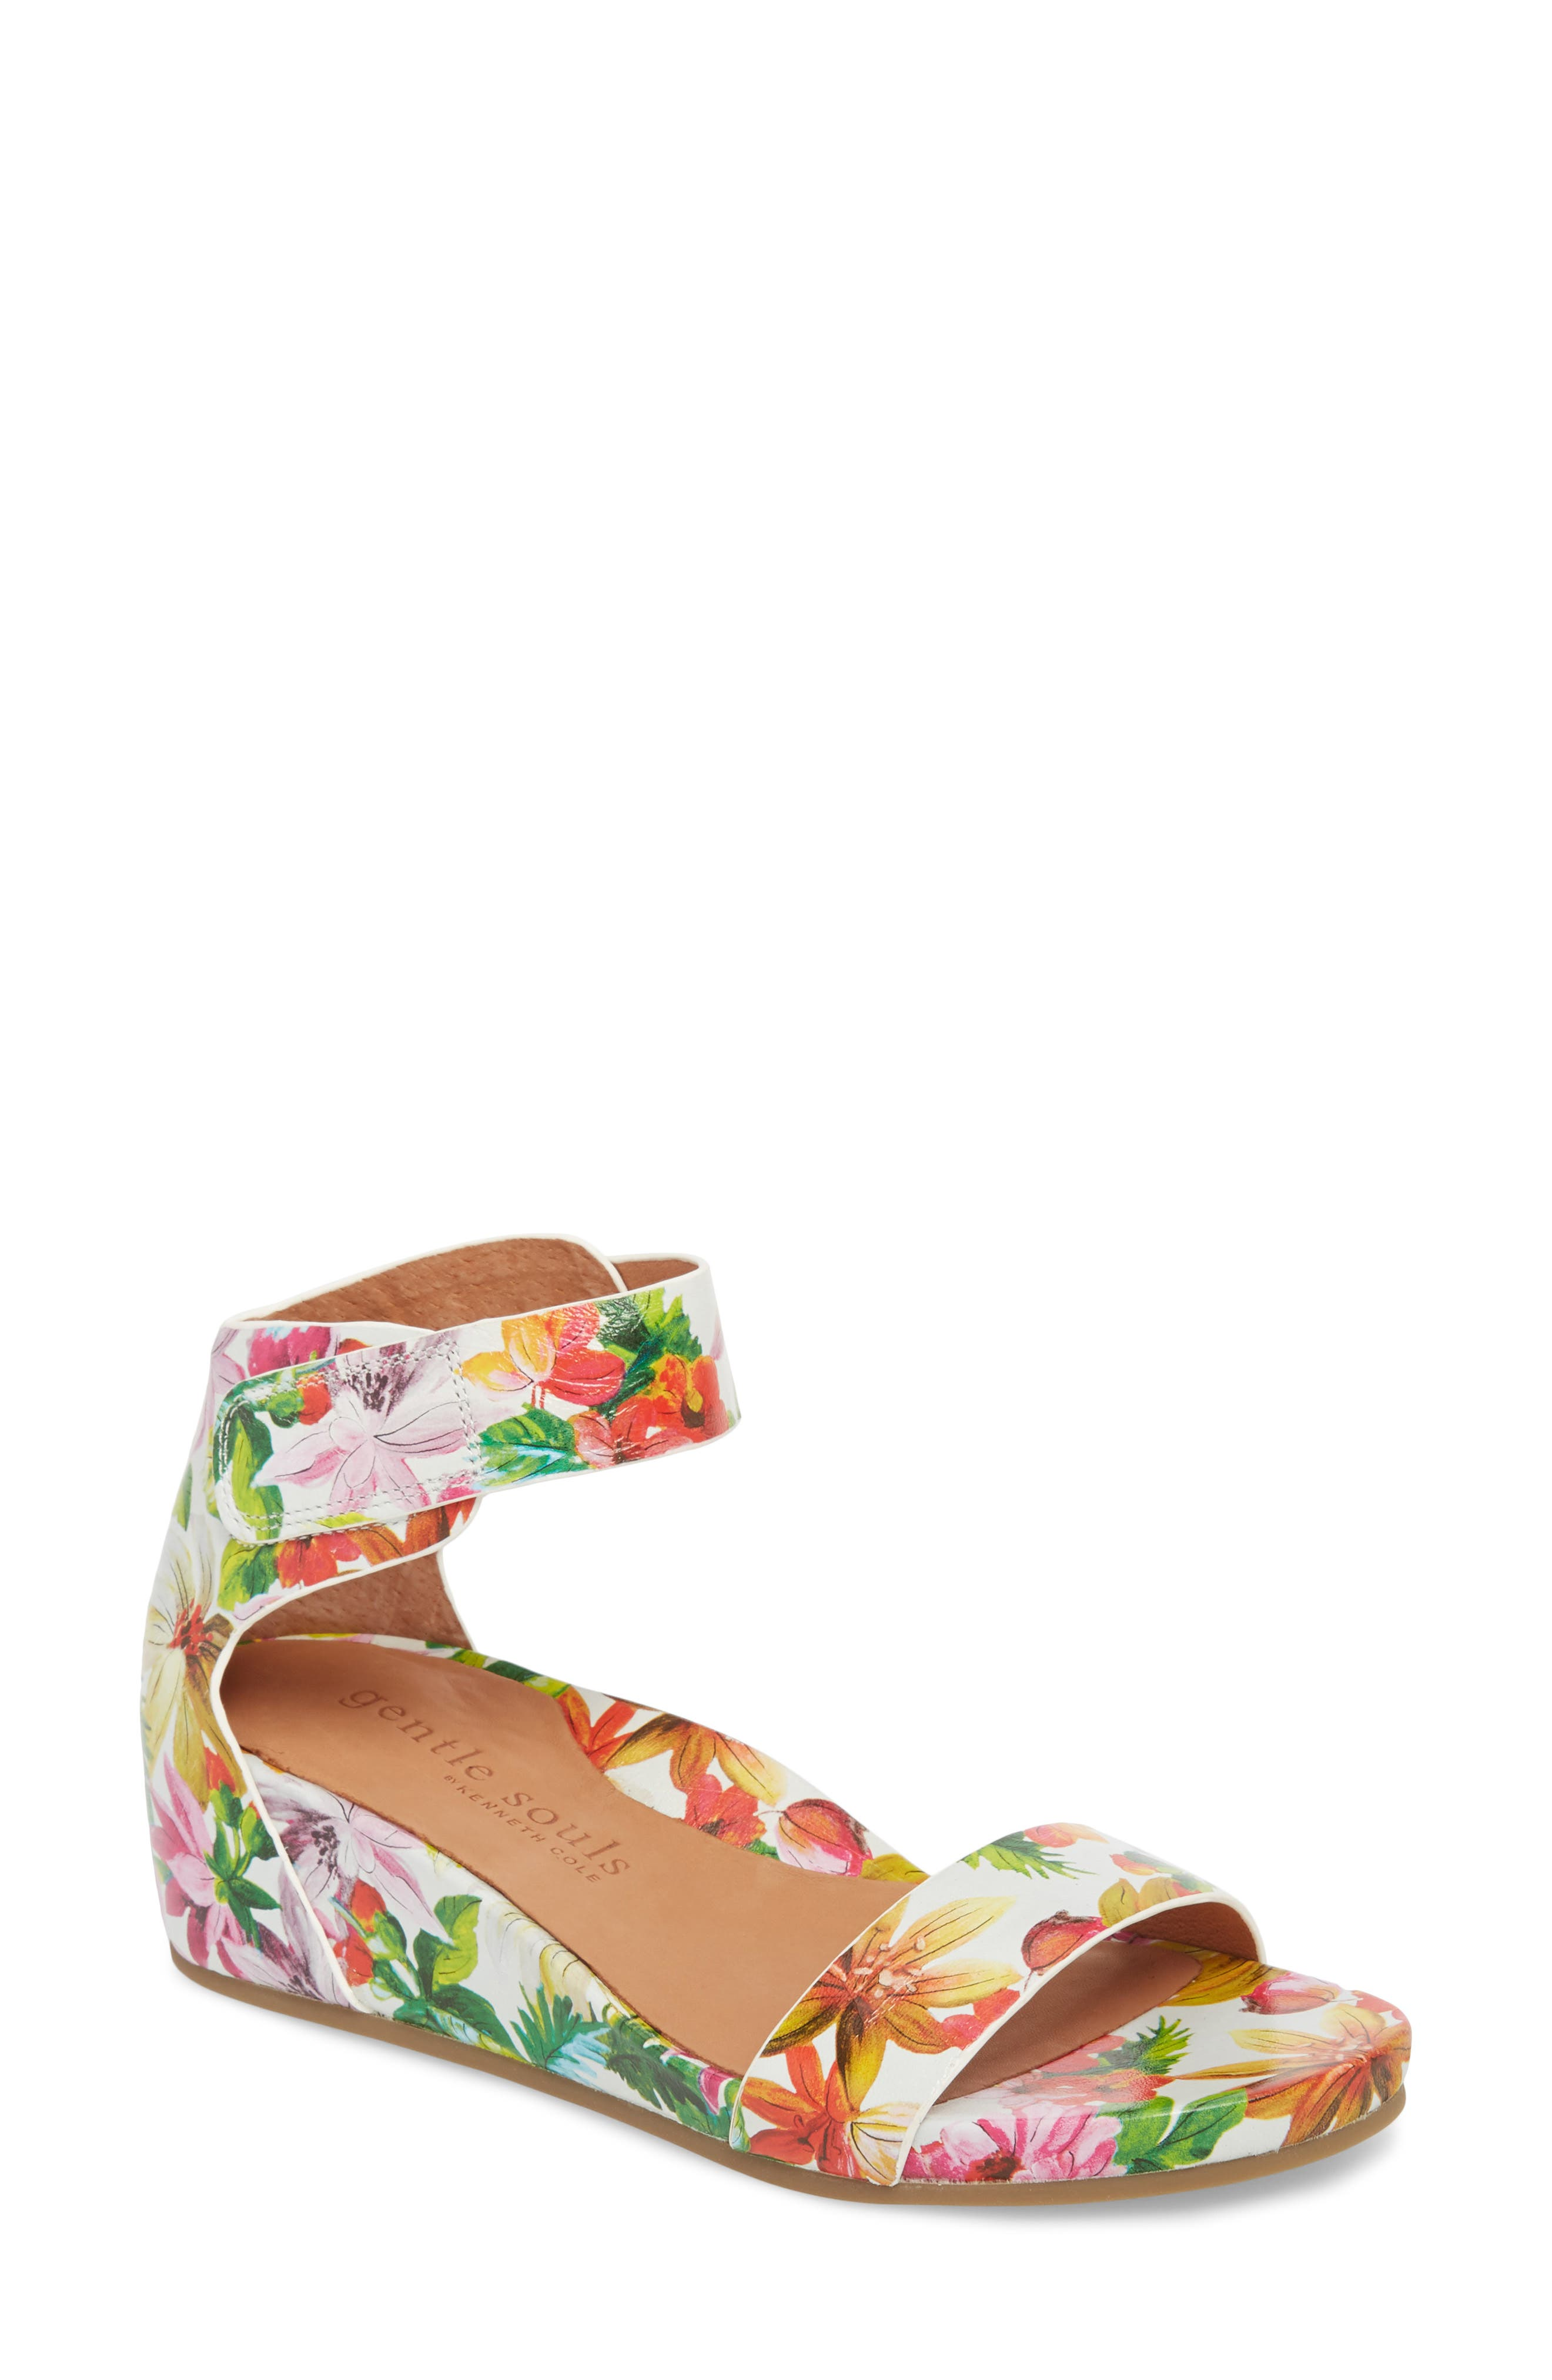 Gentle Souls by Kenneth Cole Gianna Wedge Sandal,                             Main thumbnail 1, color,                             PALM PRINTED LEATHER